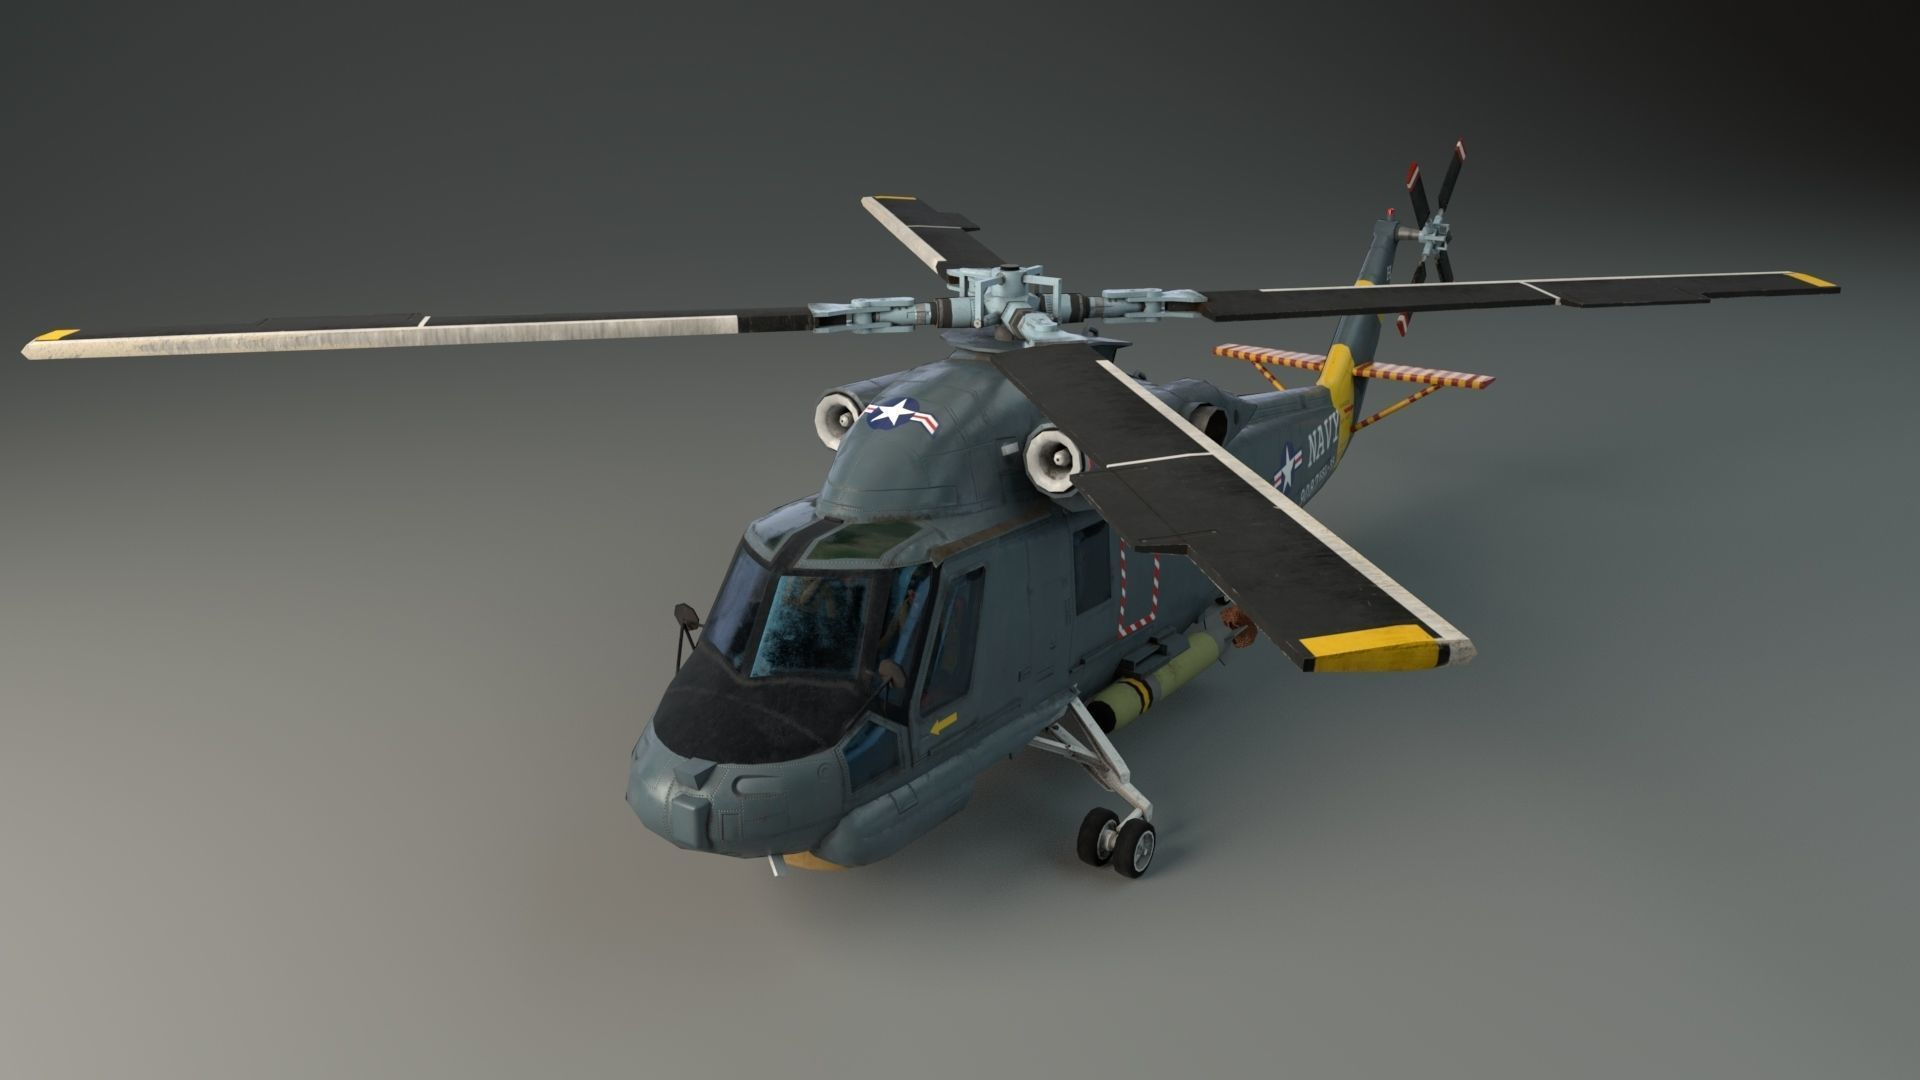 Lowpoly Helicopter - Seasprite SH2F